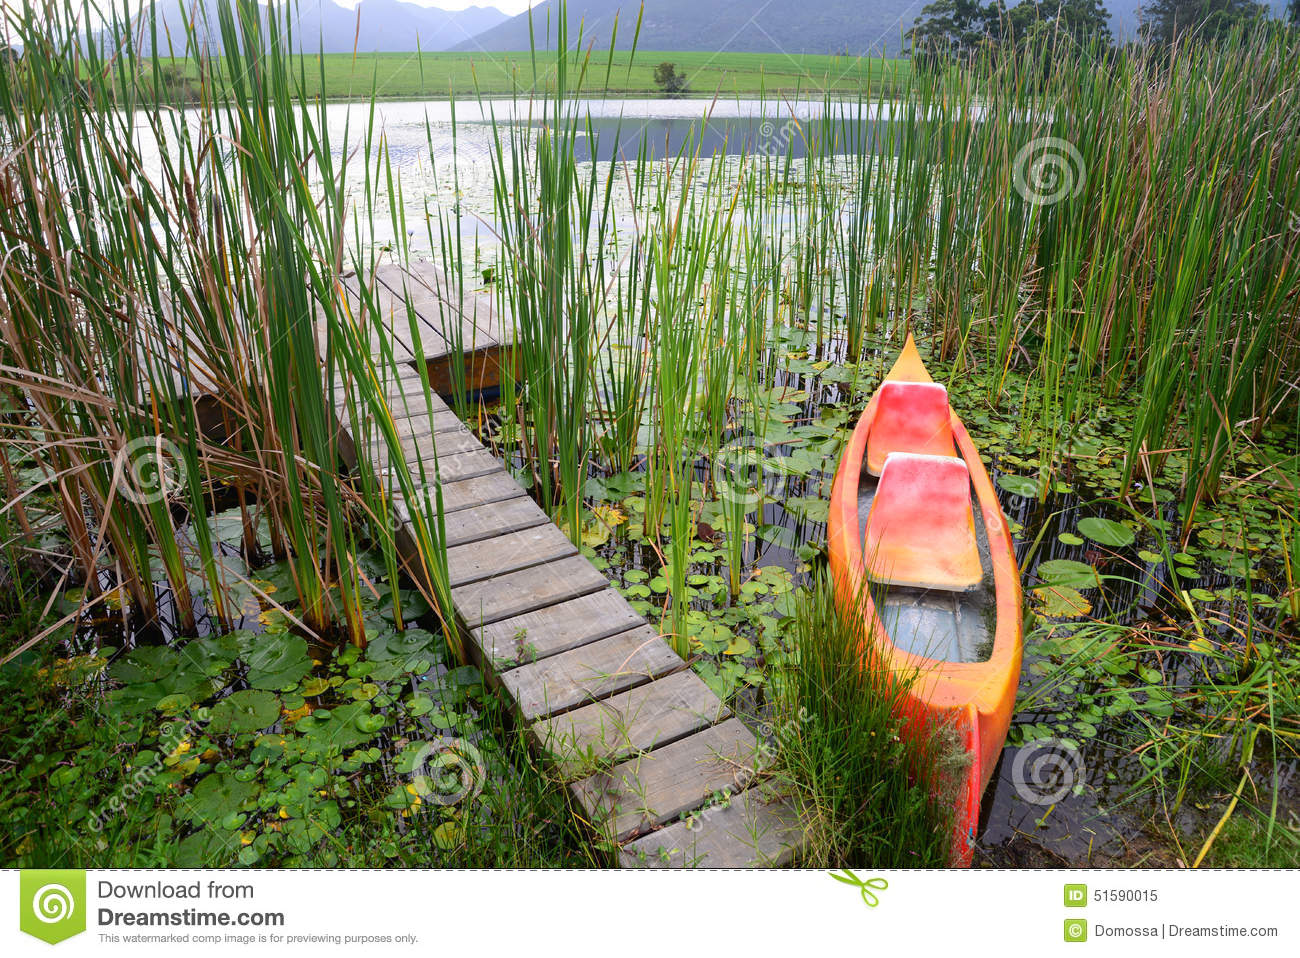 Winning Dam With Jetty And Canoe In The Garden Route South Africa Stock  With Foxy Dam With Jetty And Canoe In The Garden Route South Africa With Endearing Garden Peas Also Raised Garden Troughs In Addition English Garden In Munich And Secret Garden Las Vegas As Well As Beechgrove Garden Bbc Additionally Cross Keys Covent Garden From Dreamstimecom With   Foxy Dam With Jetty And Canoe In The Garden Route South Africa Stock  With Endearing Dam With Jetty And Canoe In The Garden Route South Africa And Winning Garden Peas Also Raised Garden Troughs In Addition English Garden In Munich From Dreamstimecom